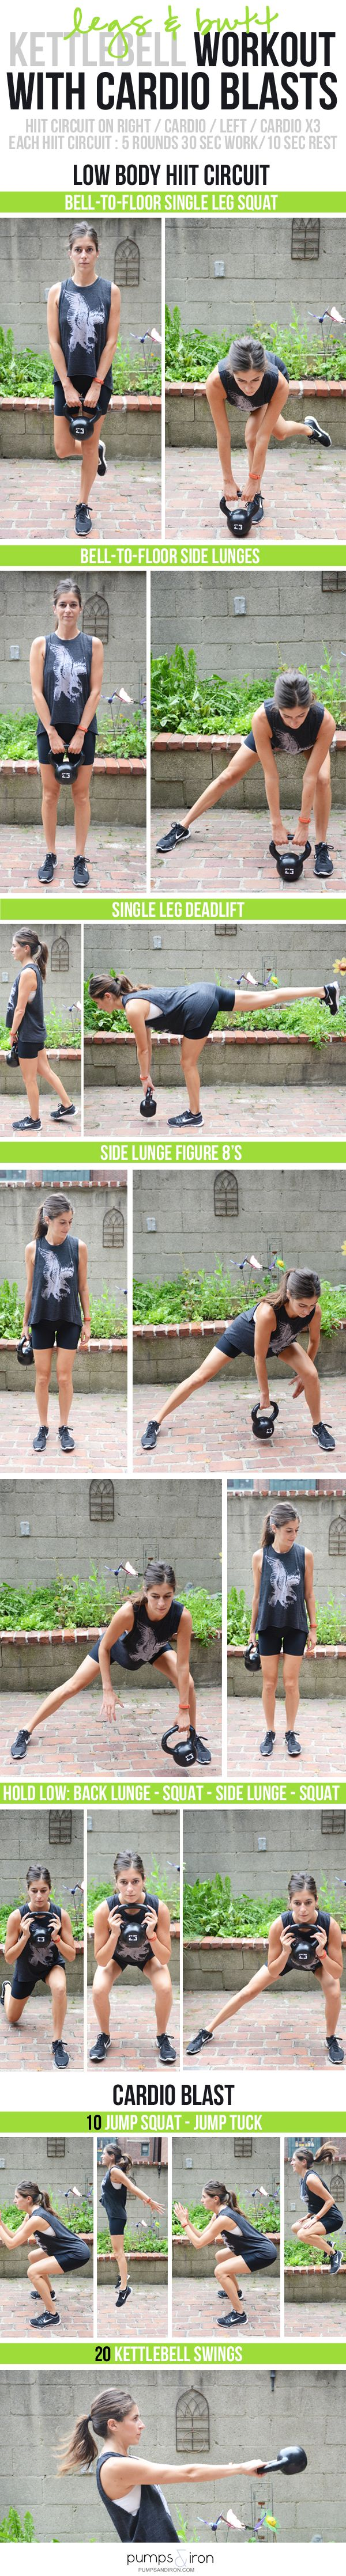 Butt & Legs Kettlebell Workout with Cardio - awesome lower body workout (and great for strengthening your back!) #GorillaGlass #sponsored https://www.kettlebellmaniac.com/kettlebell-exercises/